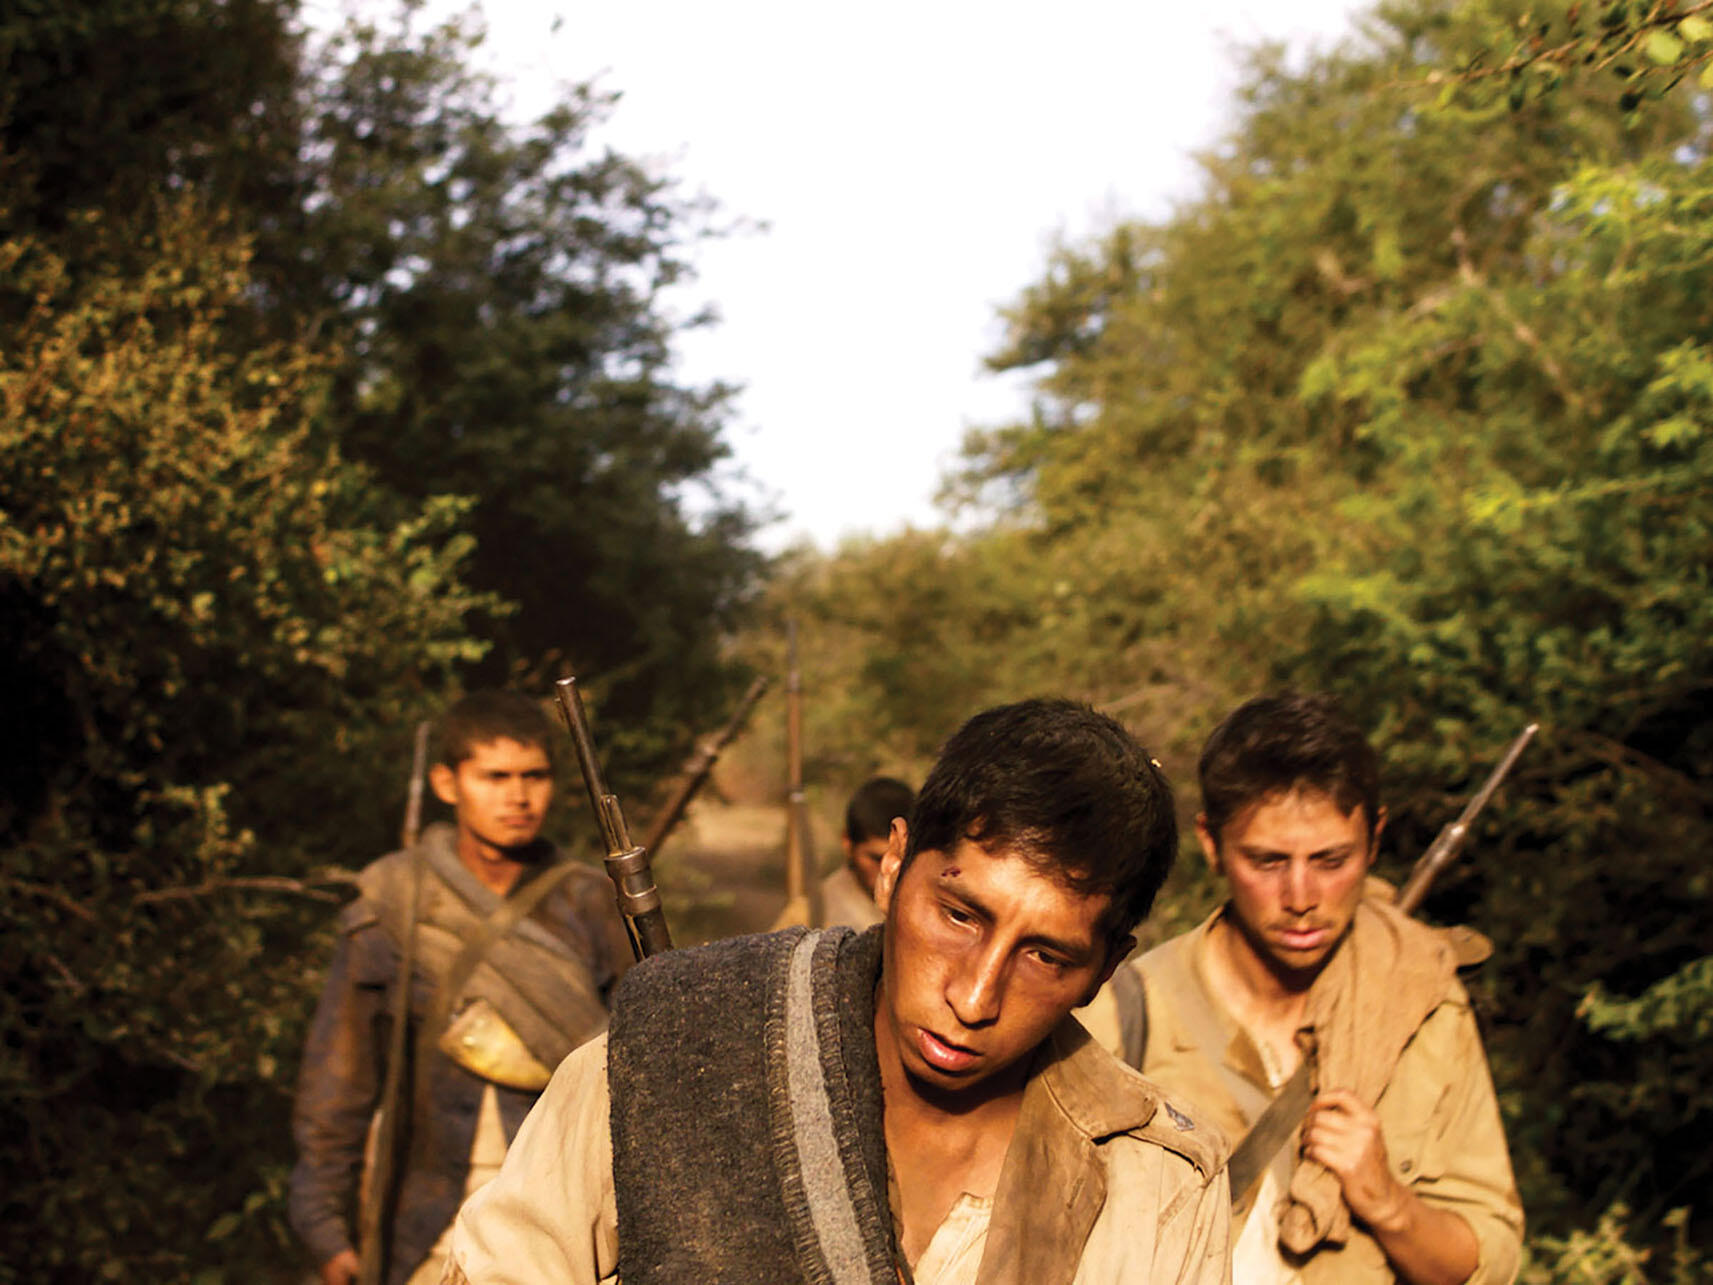 """""""So now tell me, how is your hell where your glory has gone?"""" Somber lyrics from a Bolivian song echo in this still of dejected soldiers marching through the woods from """"Chaco."""" (Image courtesy of Color_Monster, Pasto, and Murillo Cine.)"""